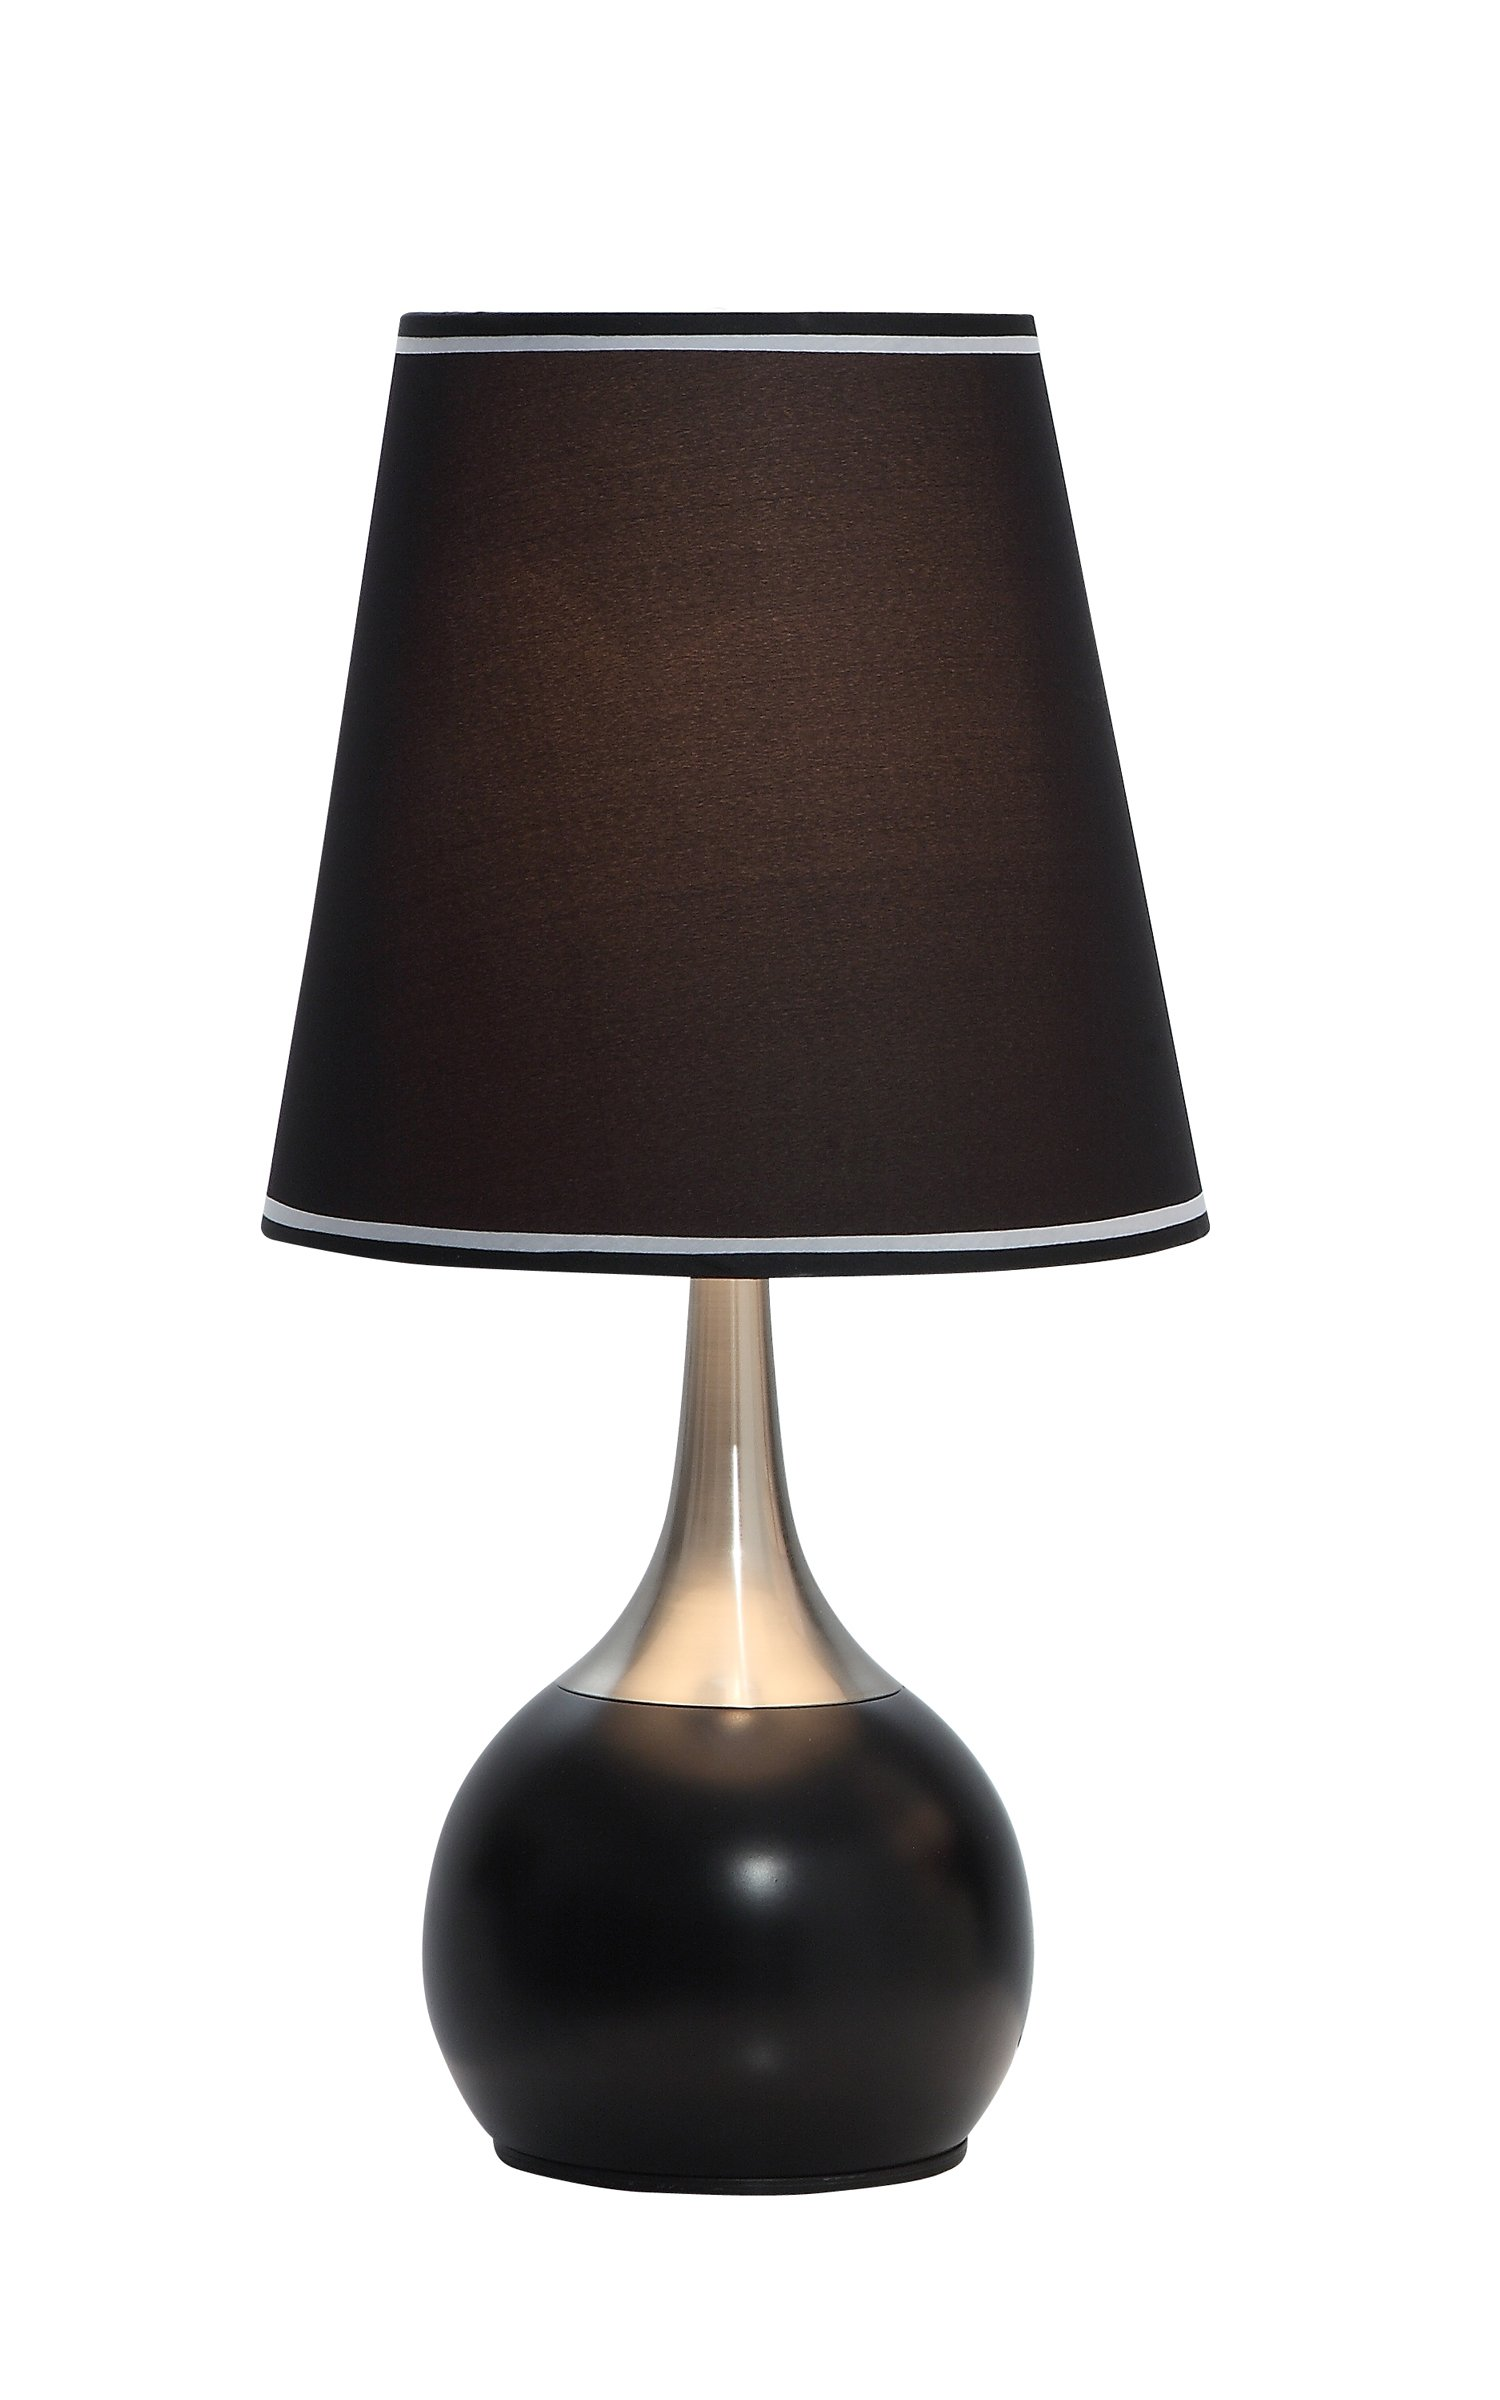 23''H CONTEMPORARY DELUXE TABLE TOUCH LAMP AVAILABLE IN BLACK. Provided by: ABC Market USA